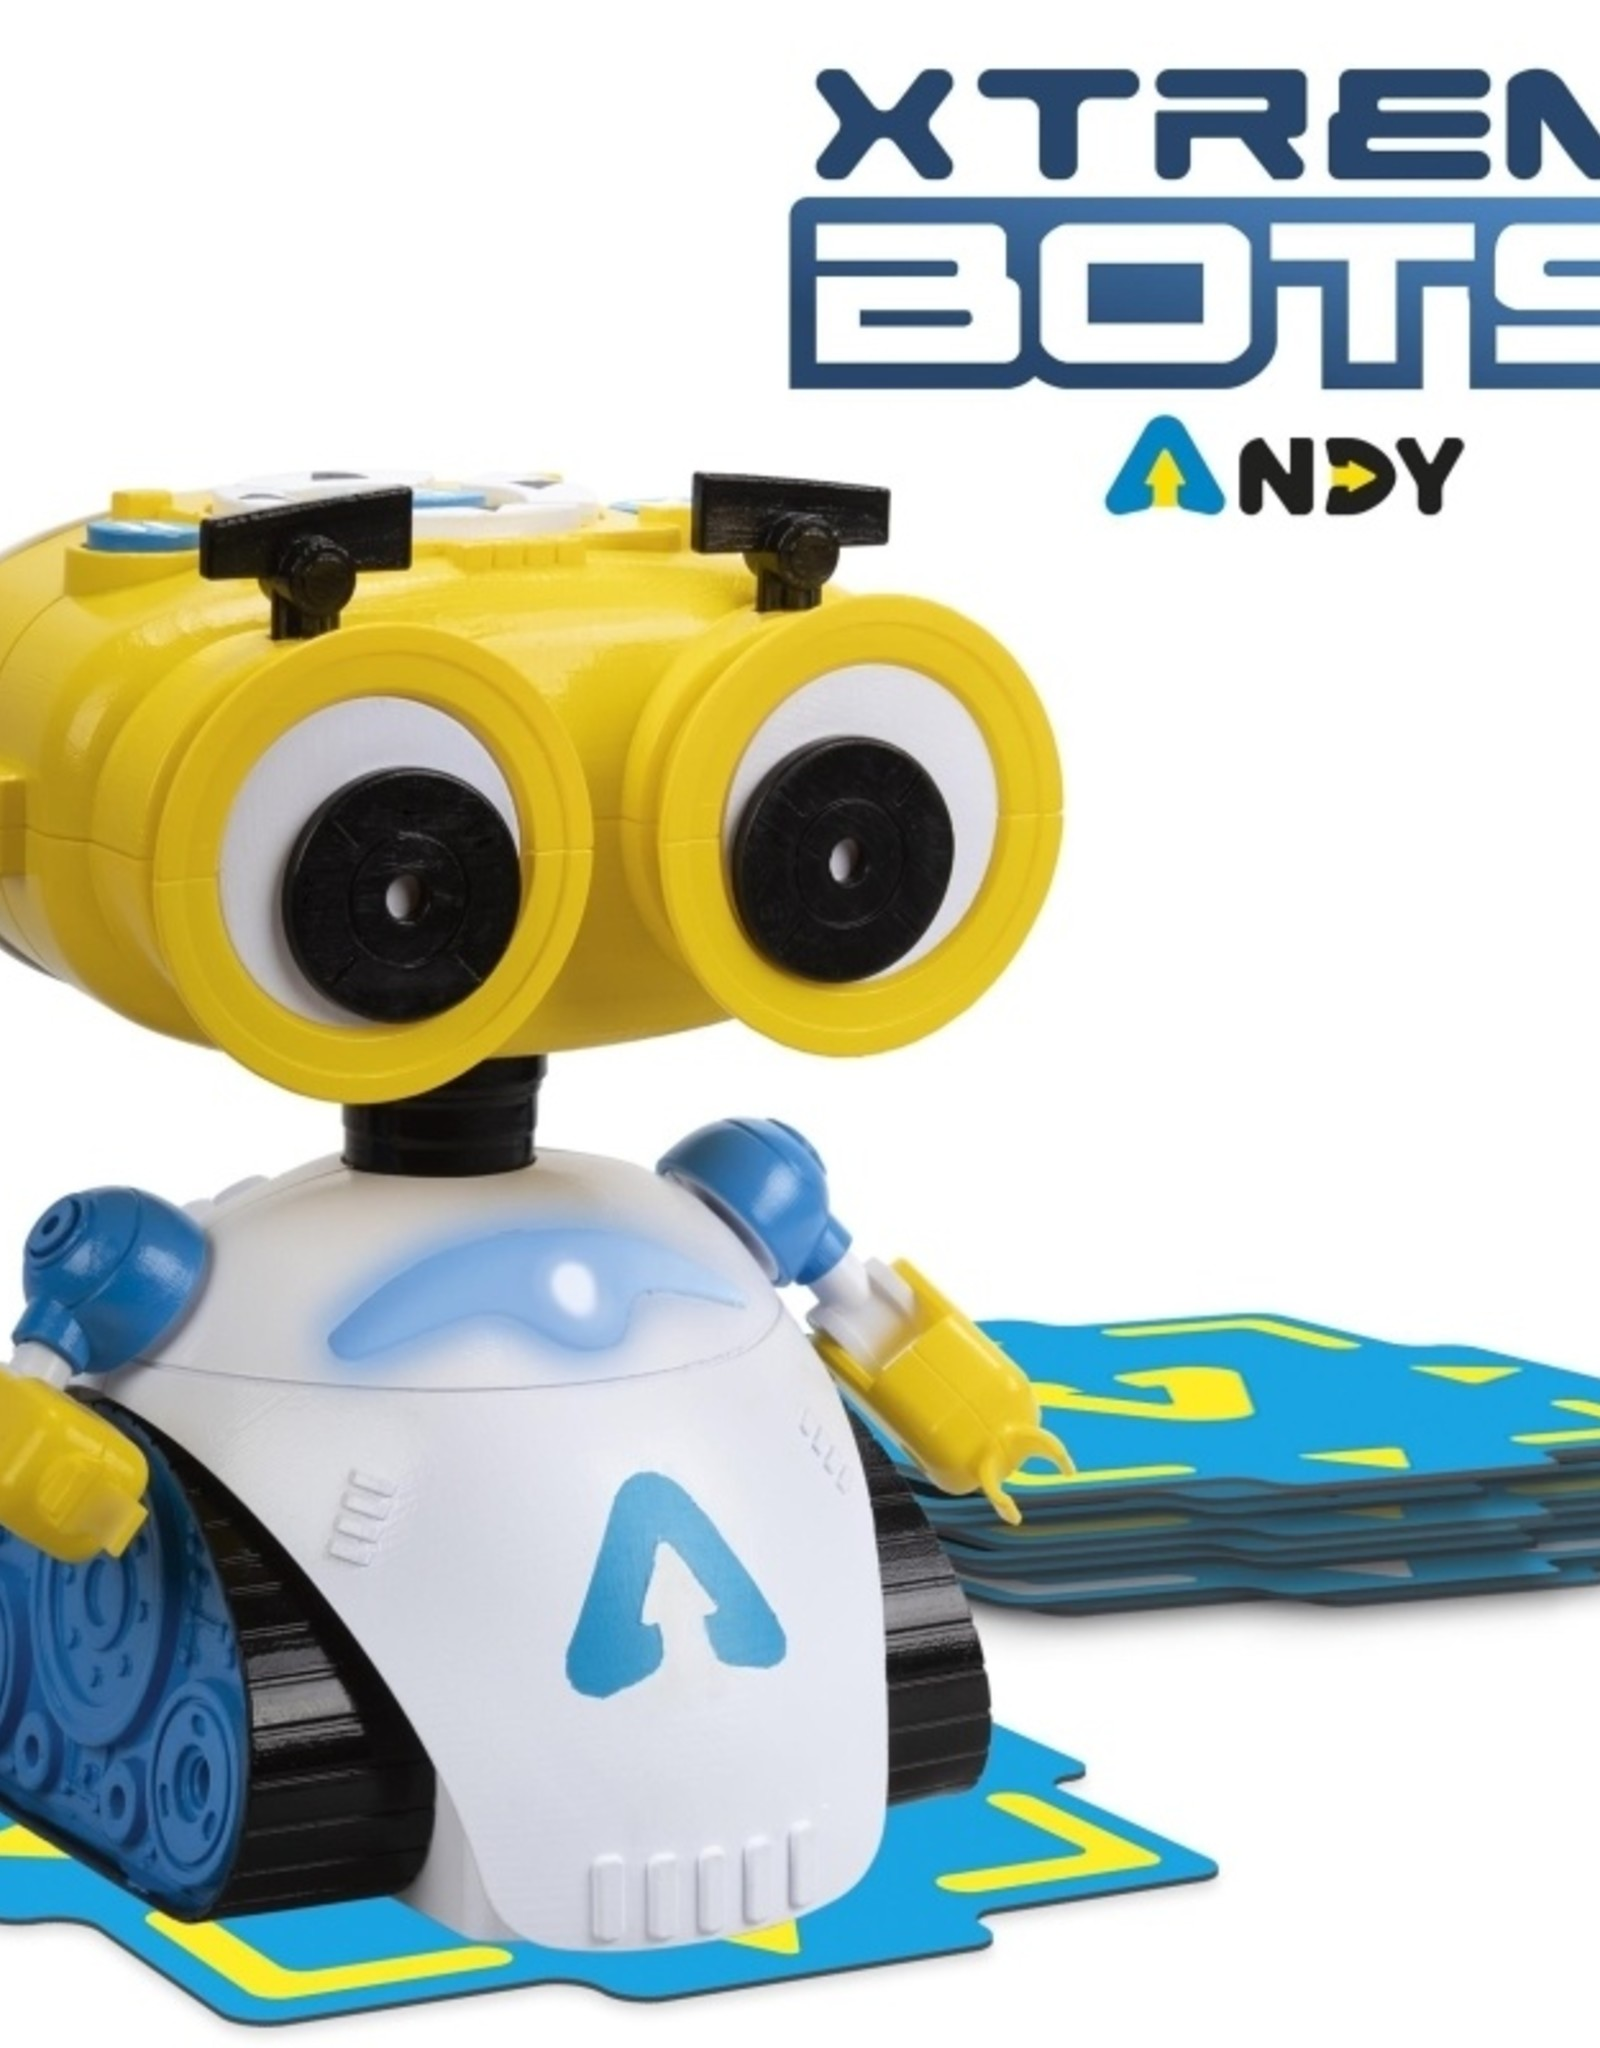 Hex Andy My First Programmable Robot Xtream Botz